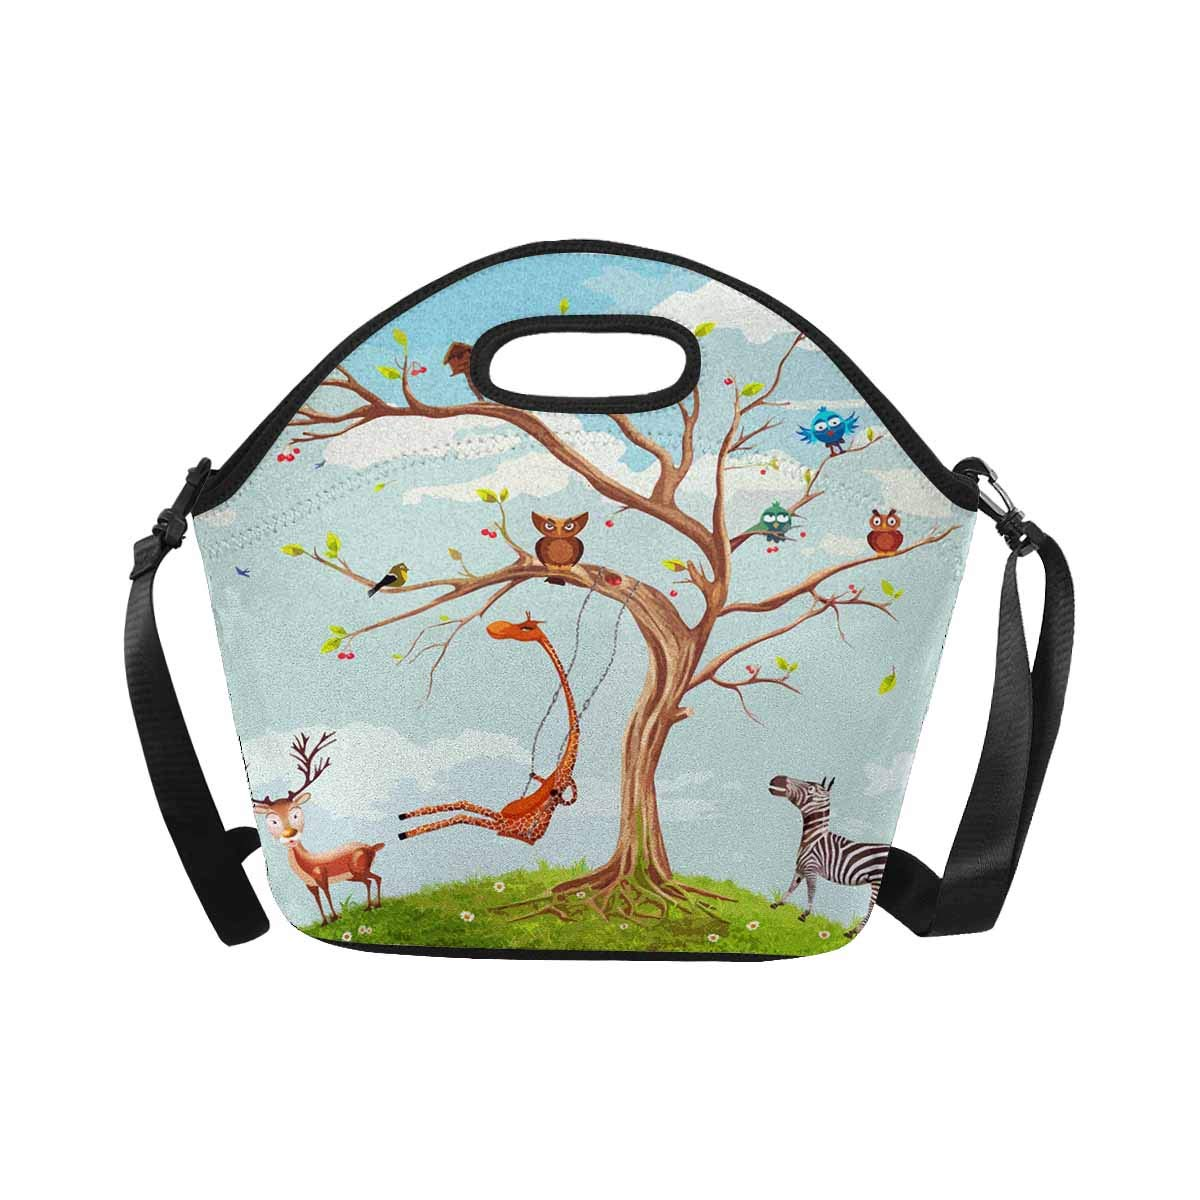 InterestPrint Neoprene Lunch Tote Bag Cute Animals Tree Reusable Lunchbox with Shoulder Strap